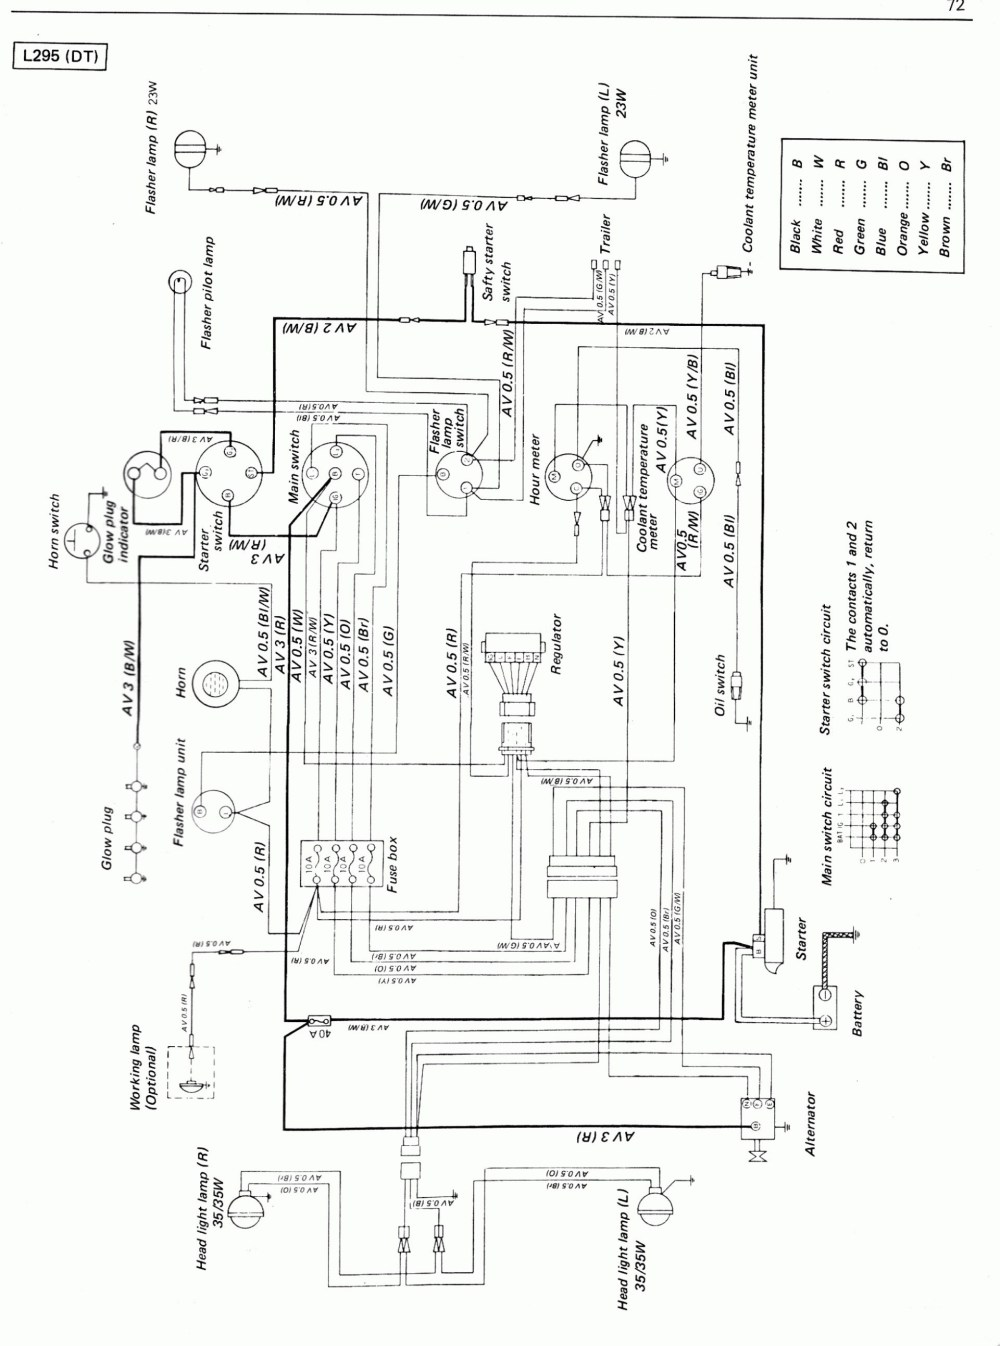 medium resolution of kubota wiring diagrams l245dt diagram database reg kubota l245 engine diagram